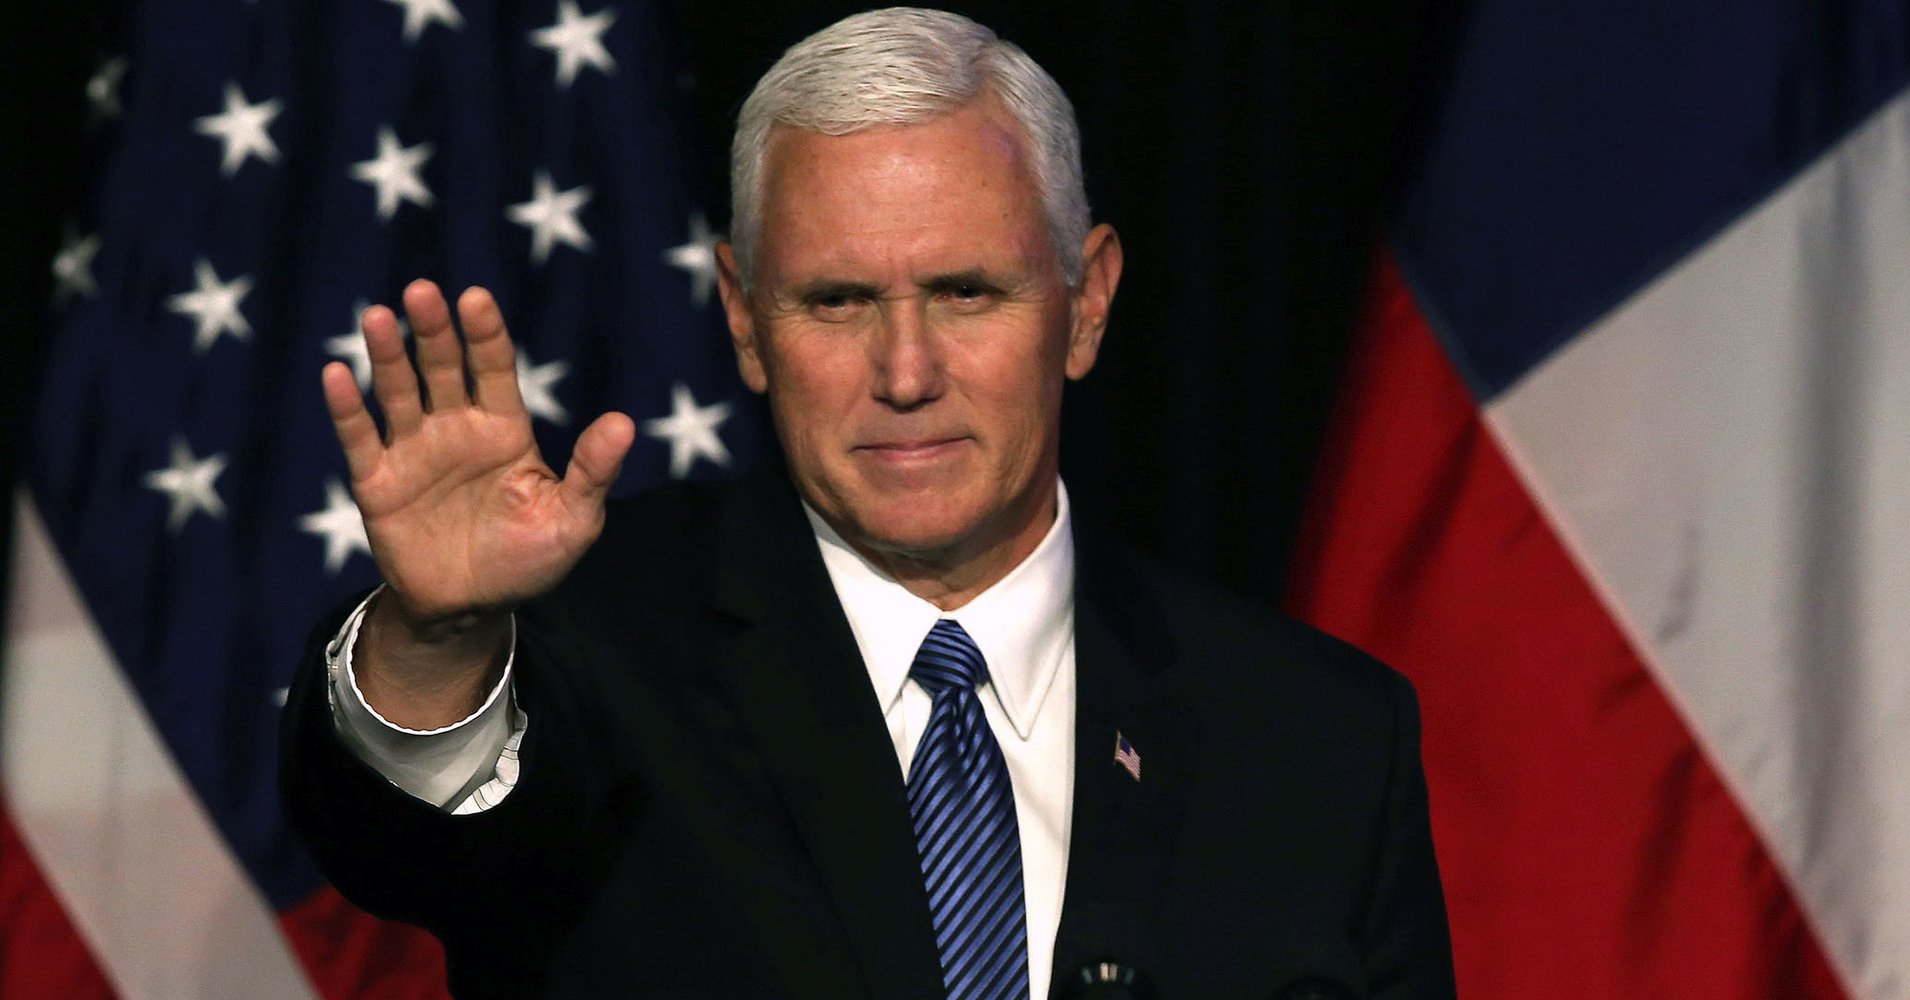 Mike Pence thinks we should have more monuments, not fewer https://t.co/kPyOh2pffu https://t.co/5DNL7HCwYn